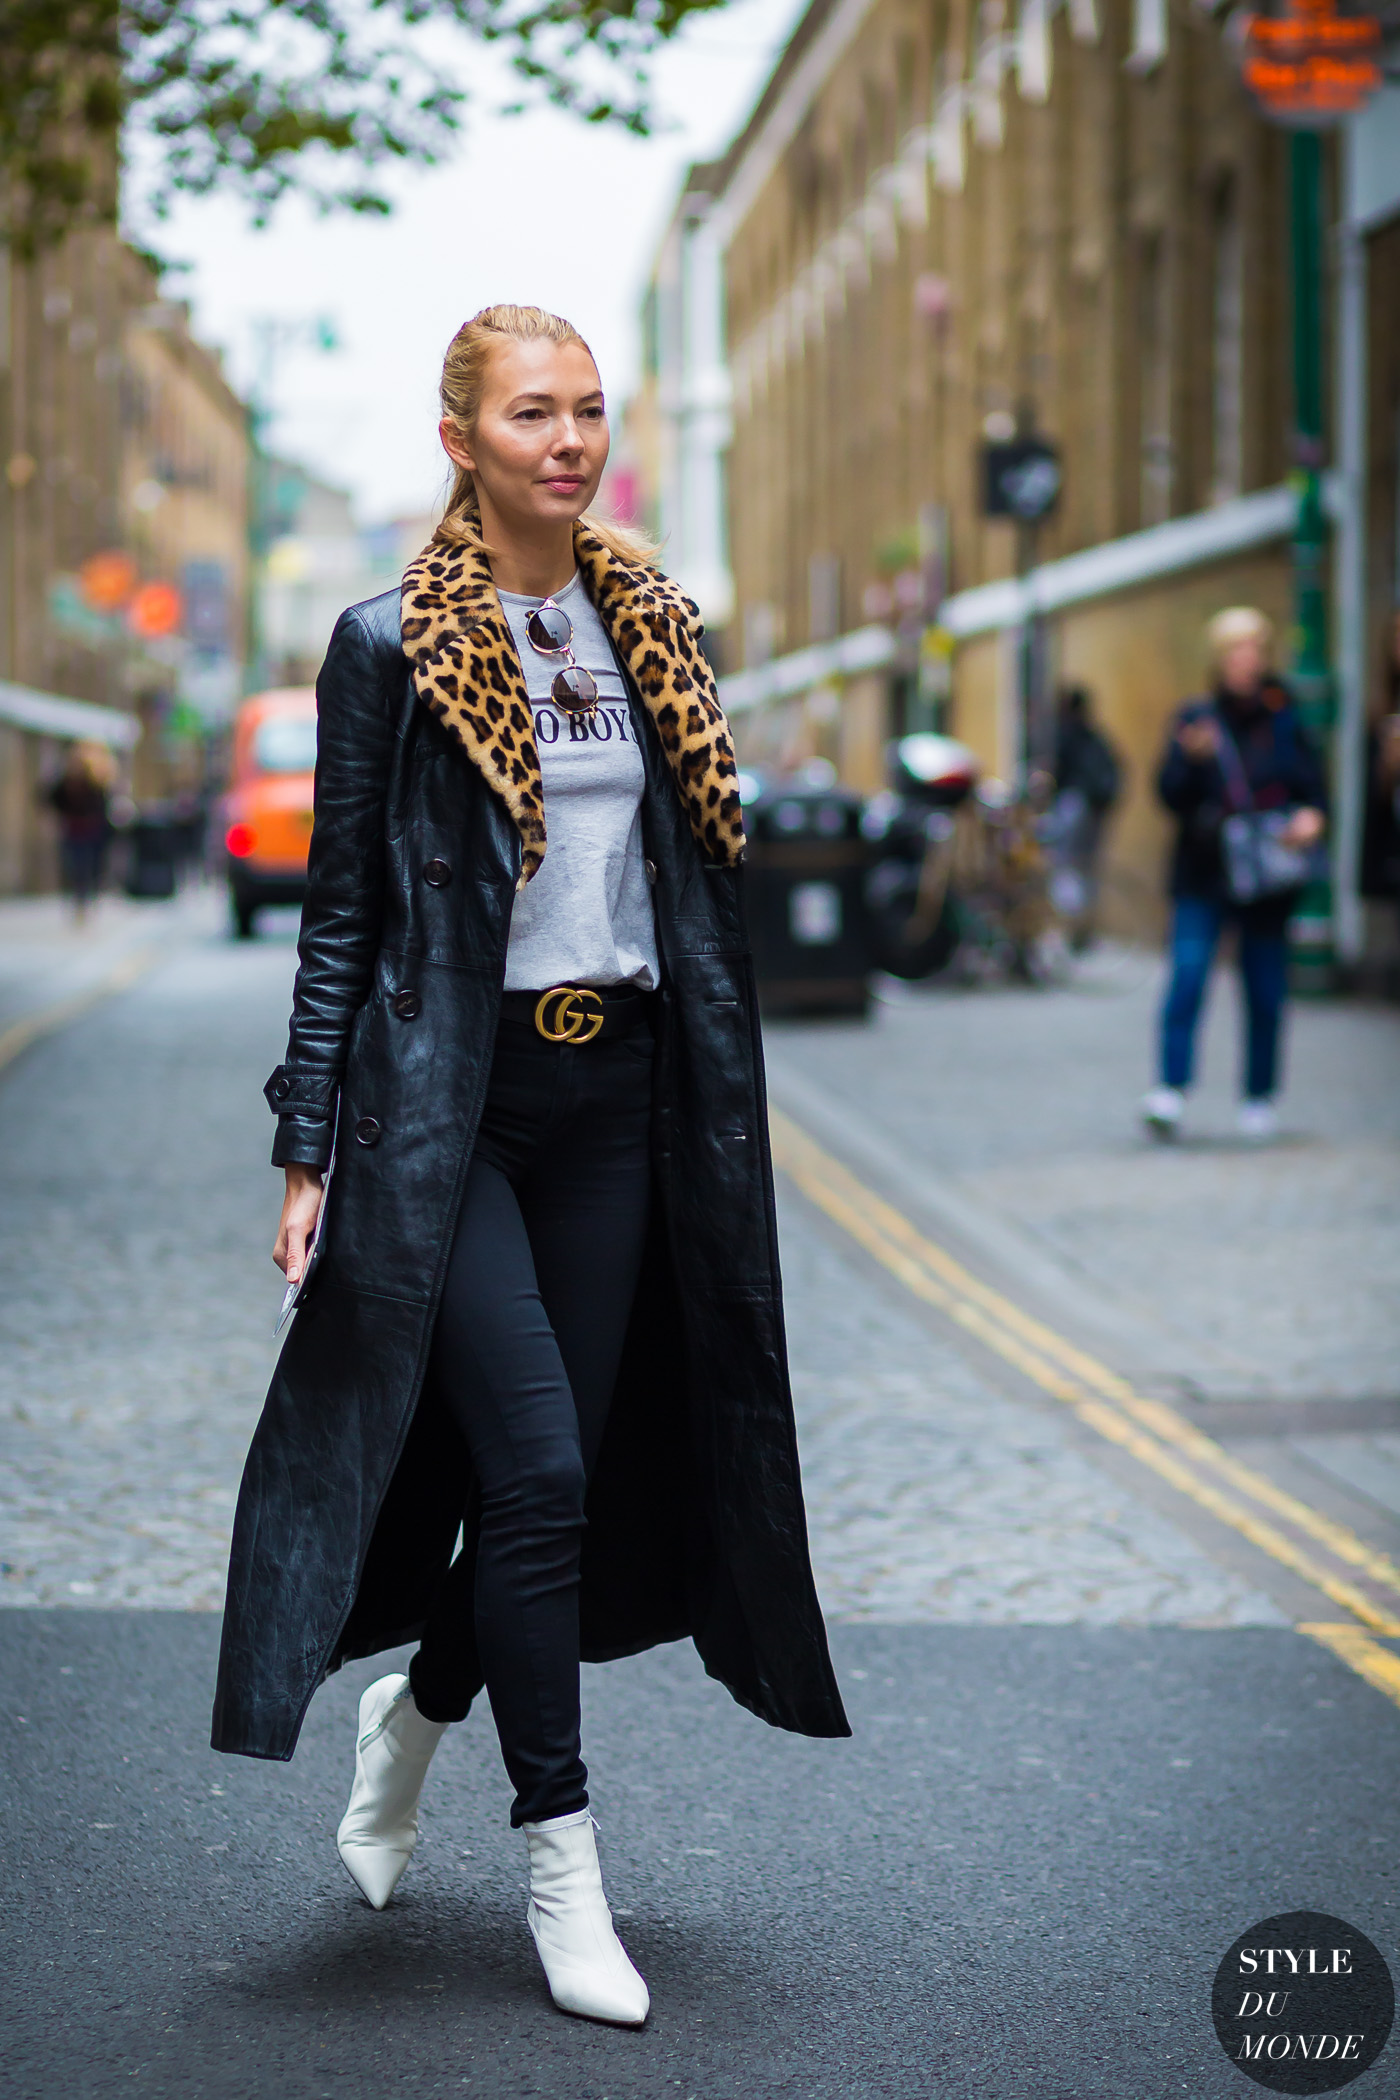 roberta-benteler-by-styledumonde-street-style-fashion-photography